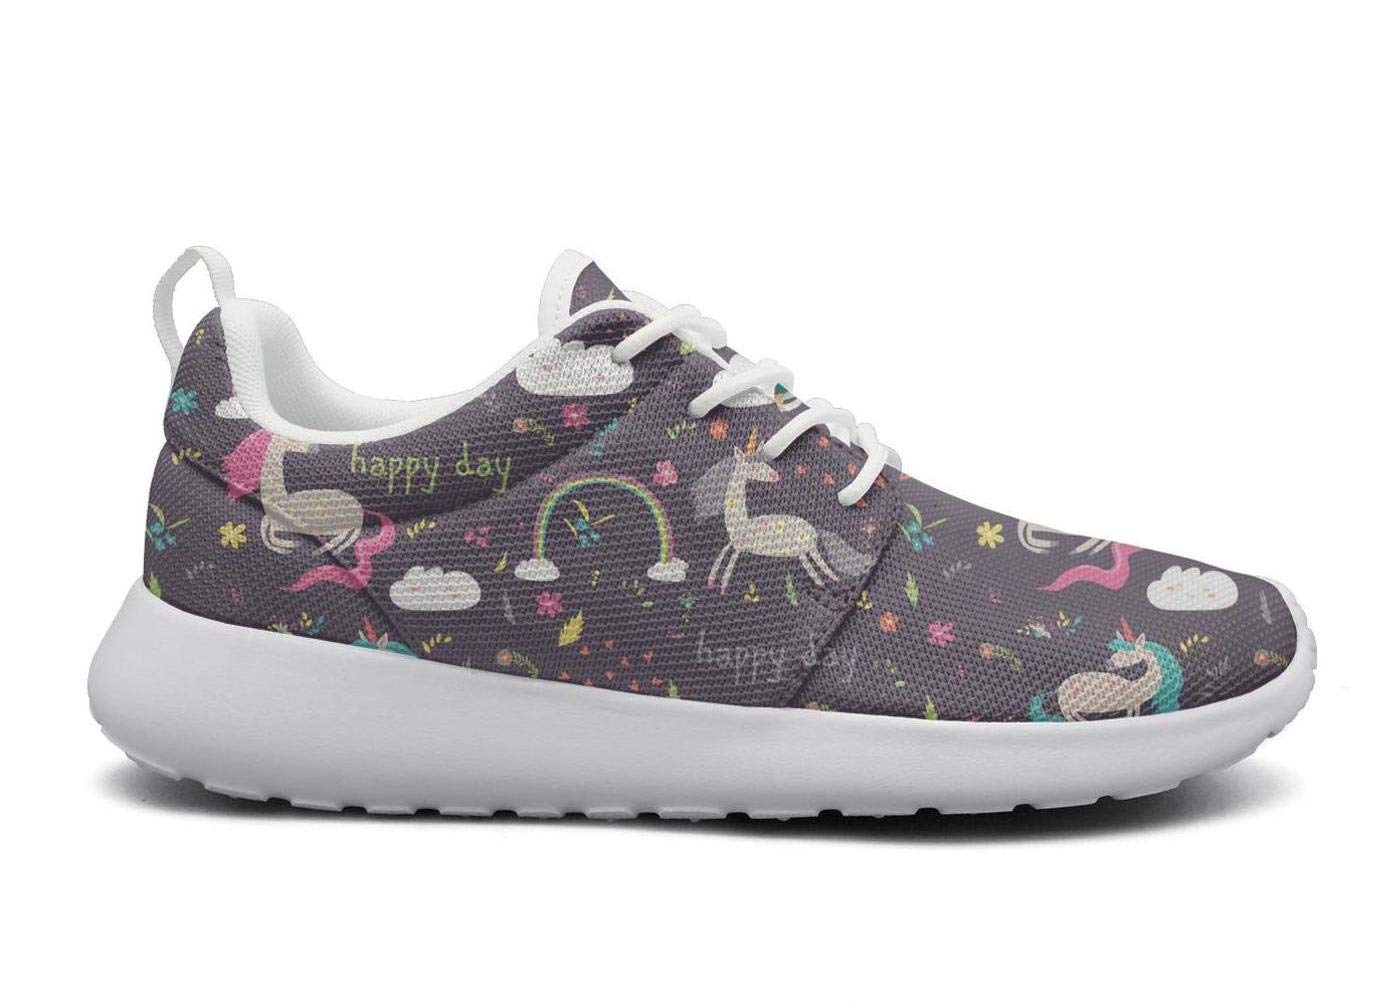 ipdterty Wear-Resistant Outdoor Sneaker Happy Unicorn in The Flowers Women Cool Athletic Running Shoes